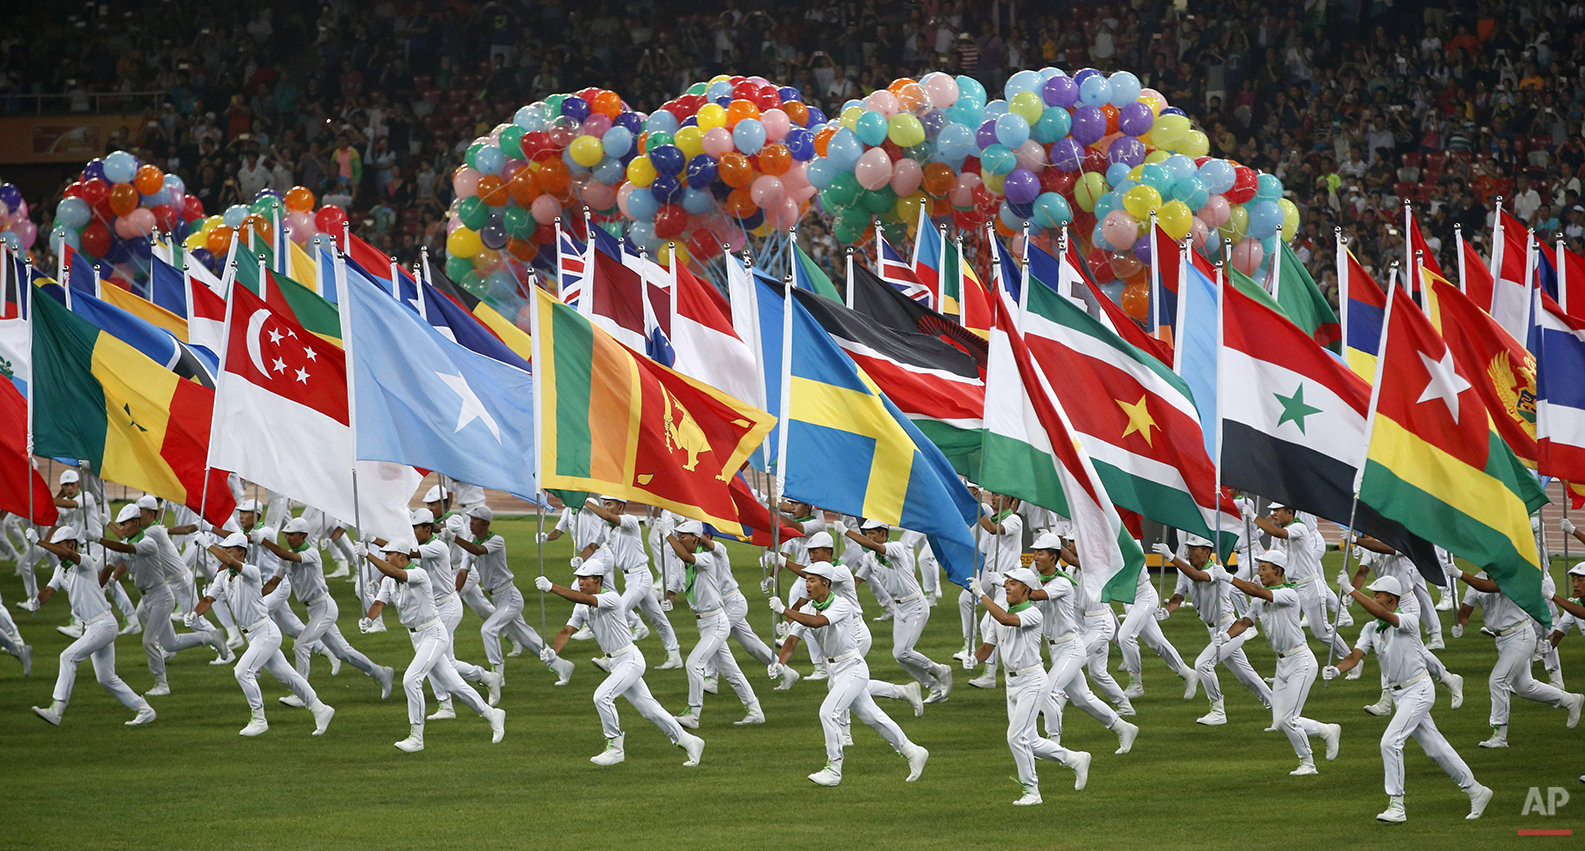 View of the closing ceremony of the World Athletics Championships at the Bird's Nest stadium in Beijing, Sunday, Aug. 30, 2015. (AP Photo/Mark Schiefelbein)